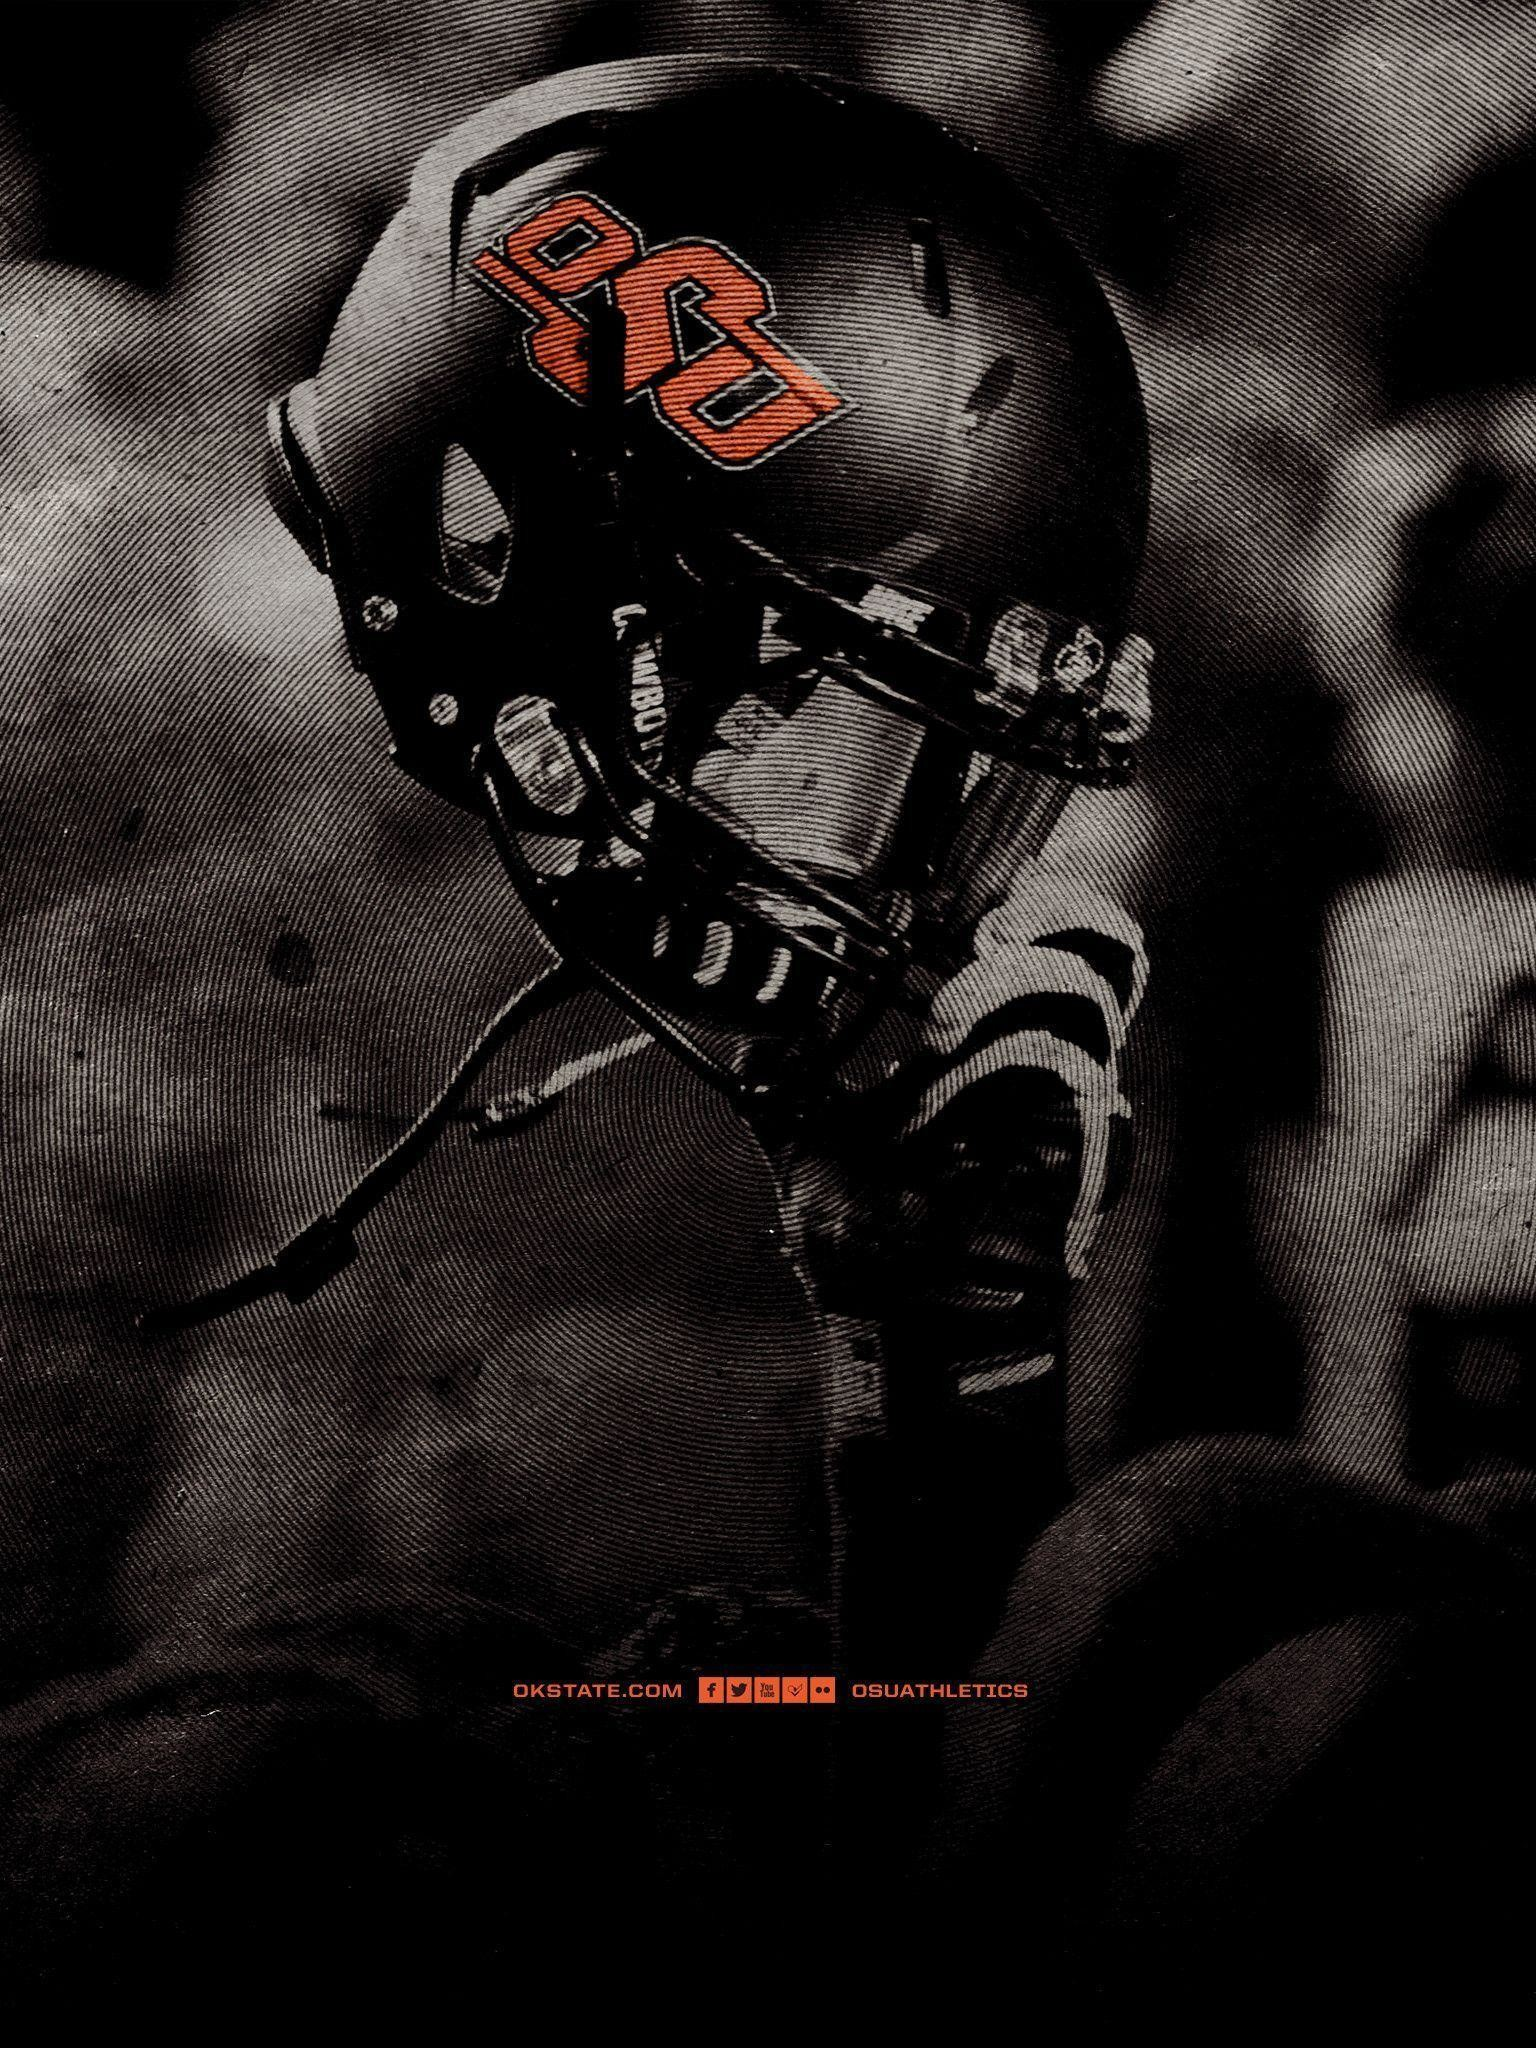 Res: 1536x2048, Oklahoma State Football Wallpapers - Wallpaper Cave